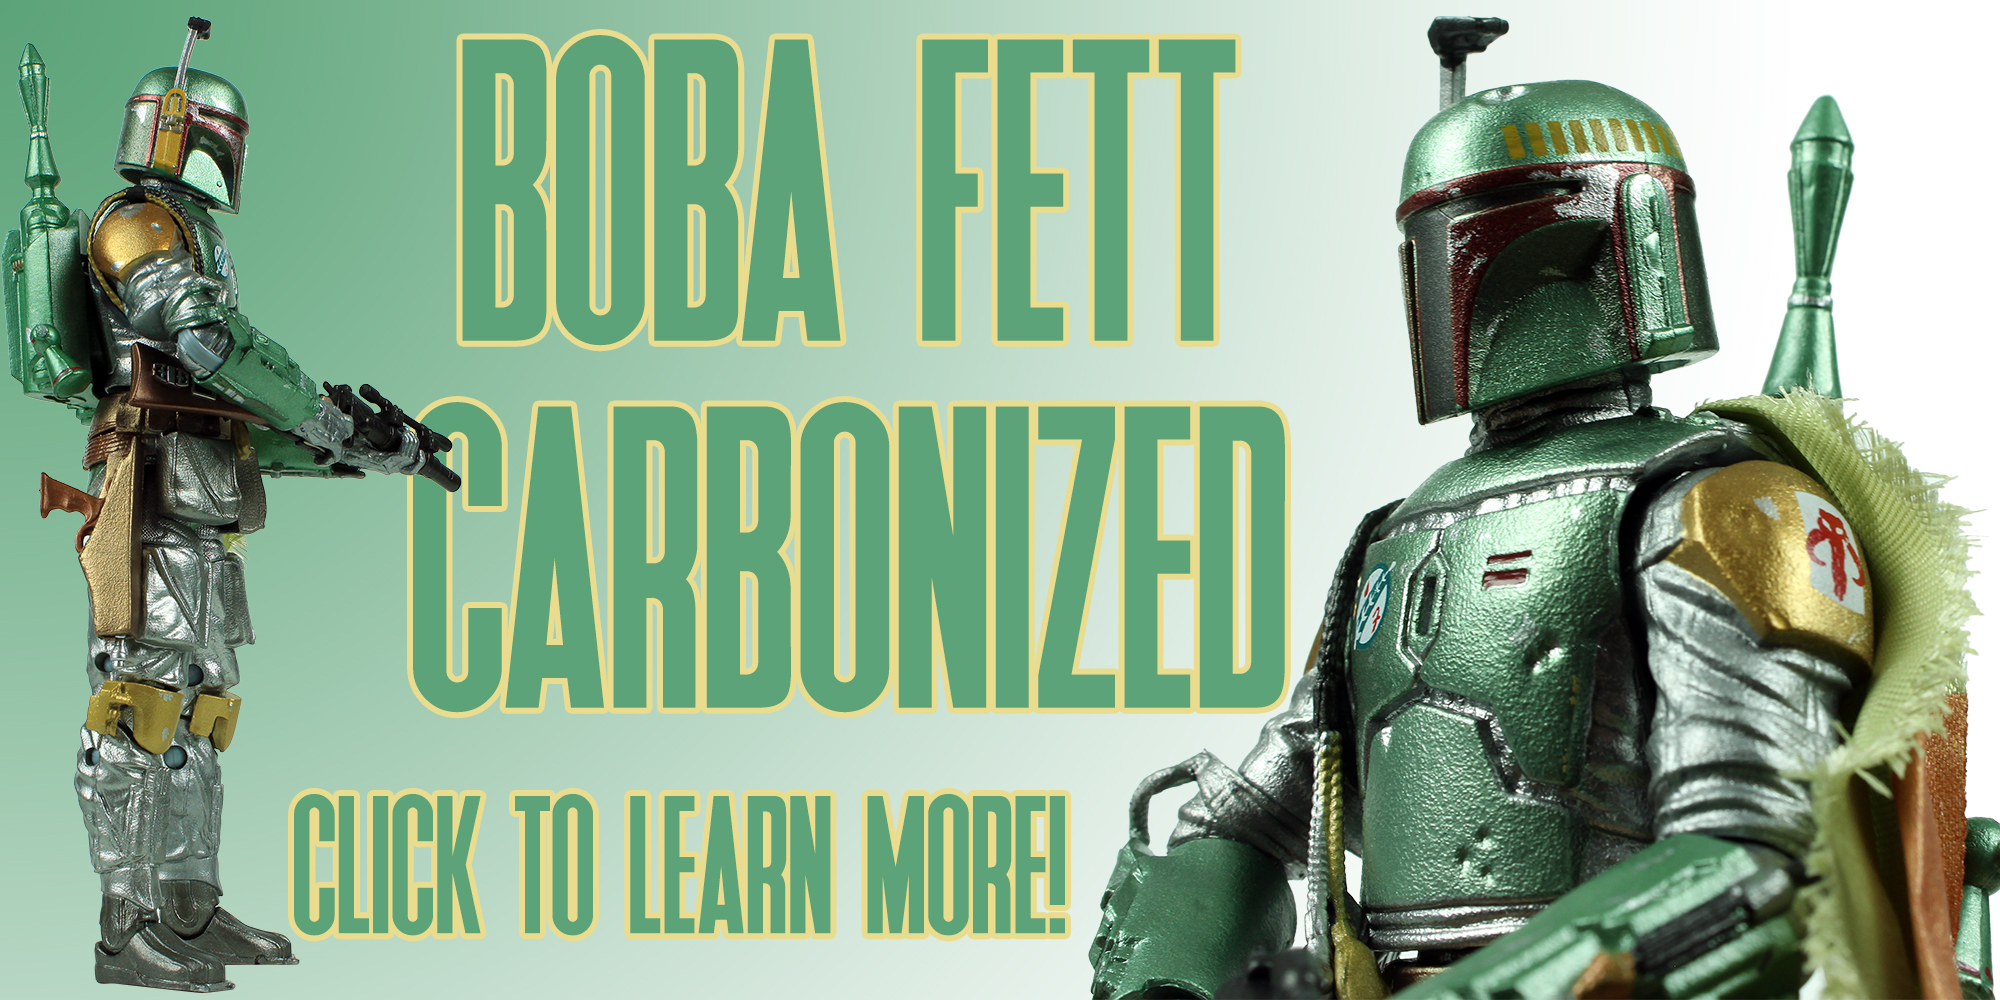 Carbonized Boba Fett